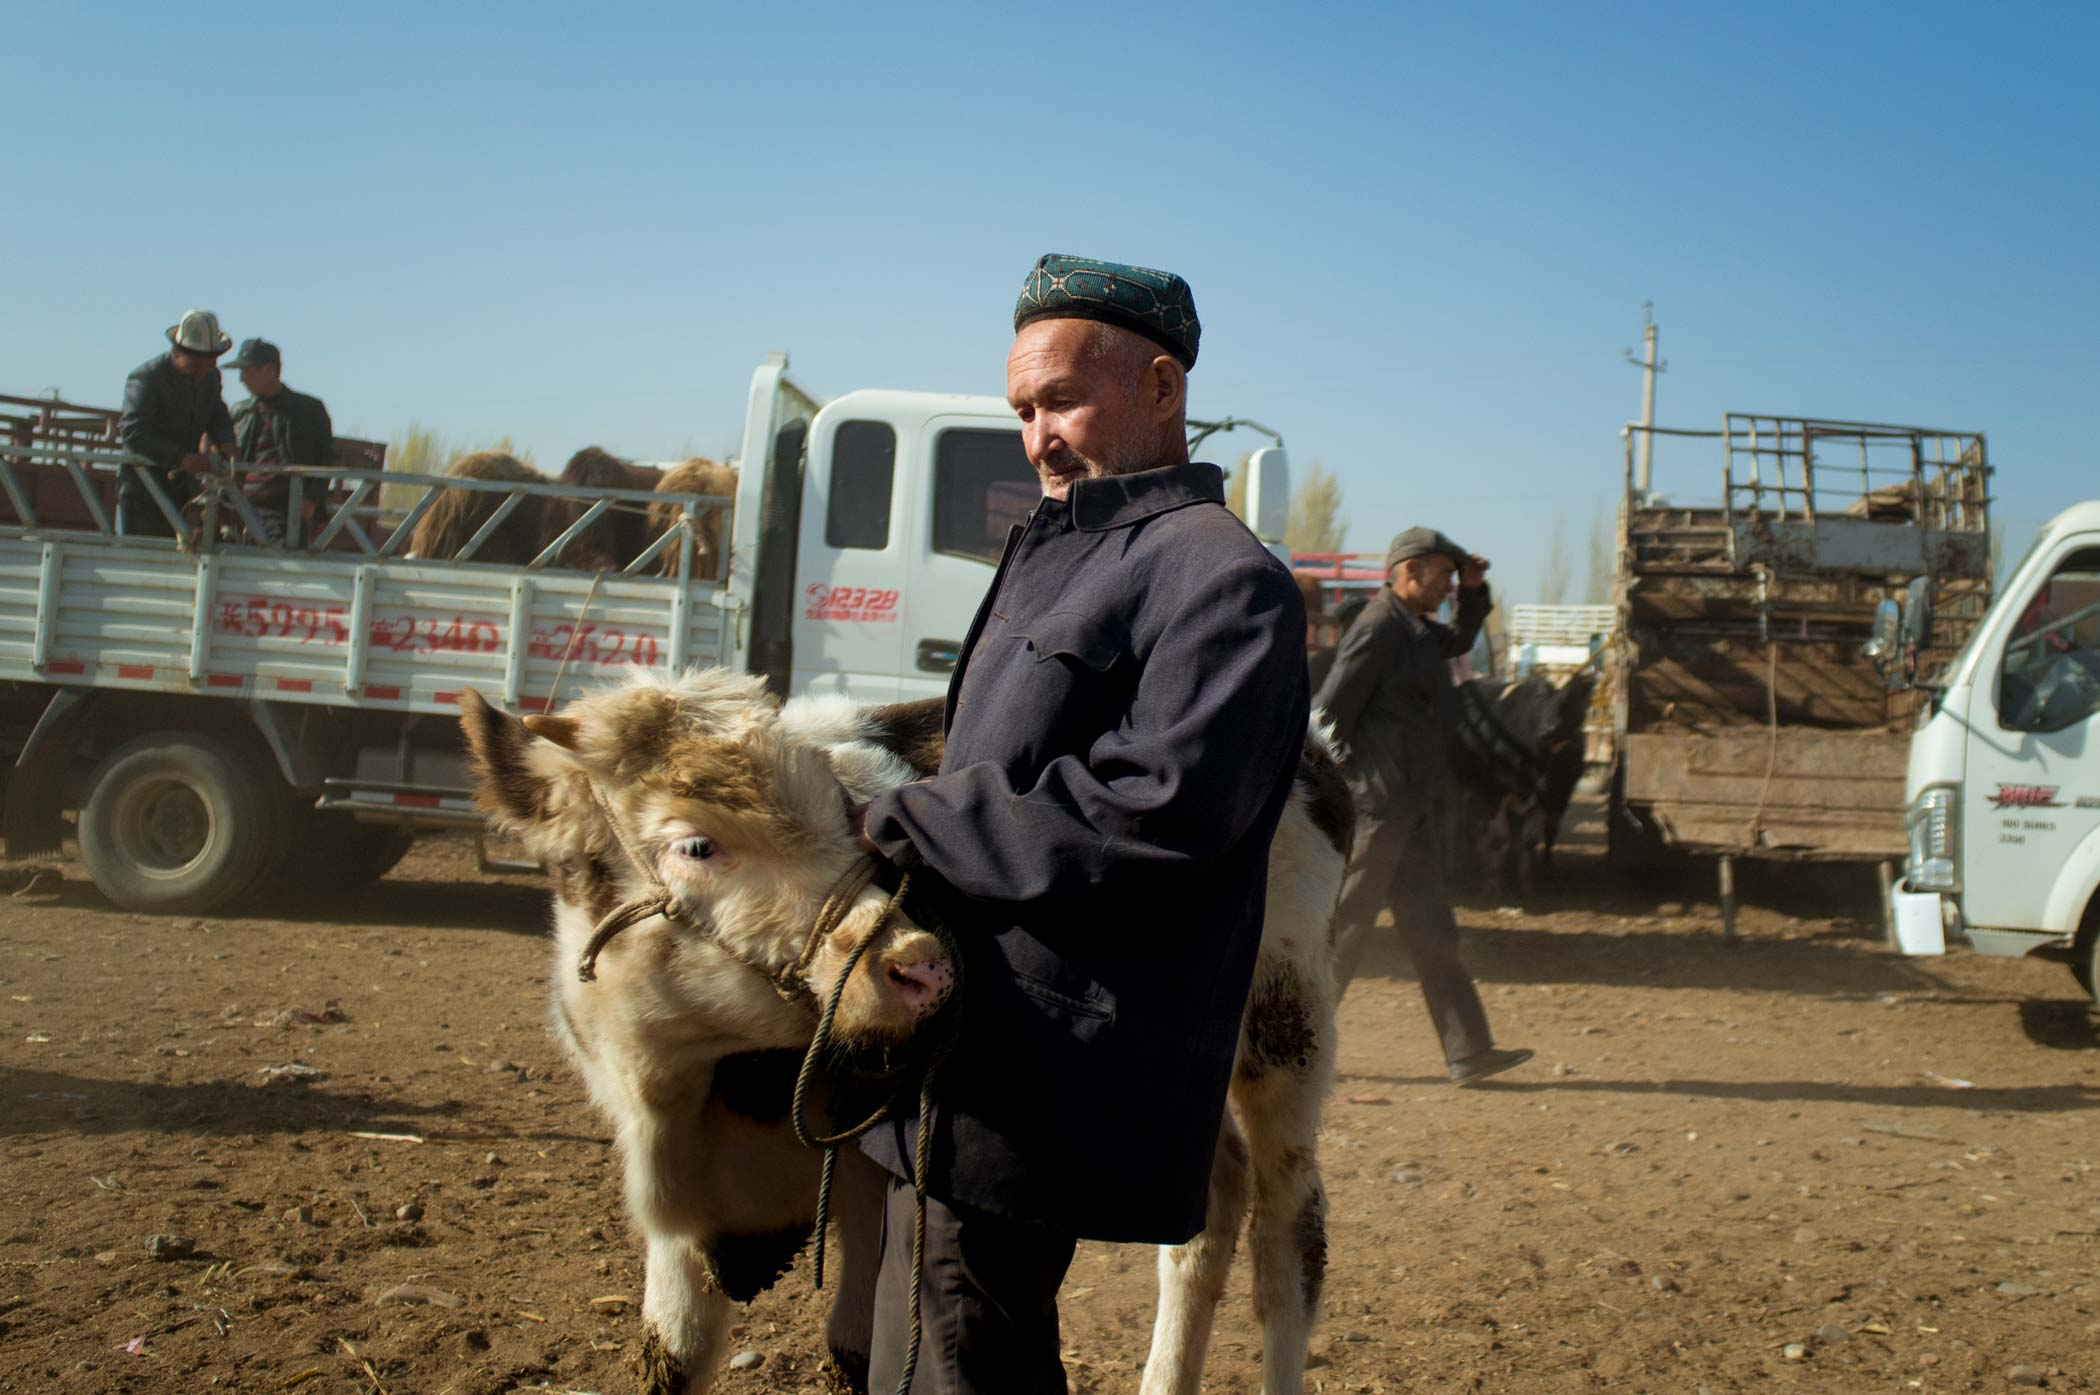 A man stands with a cow at a livestock market in Kashgar, Xinjiang.